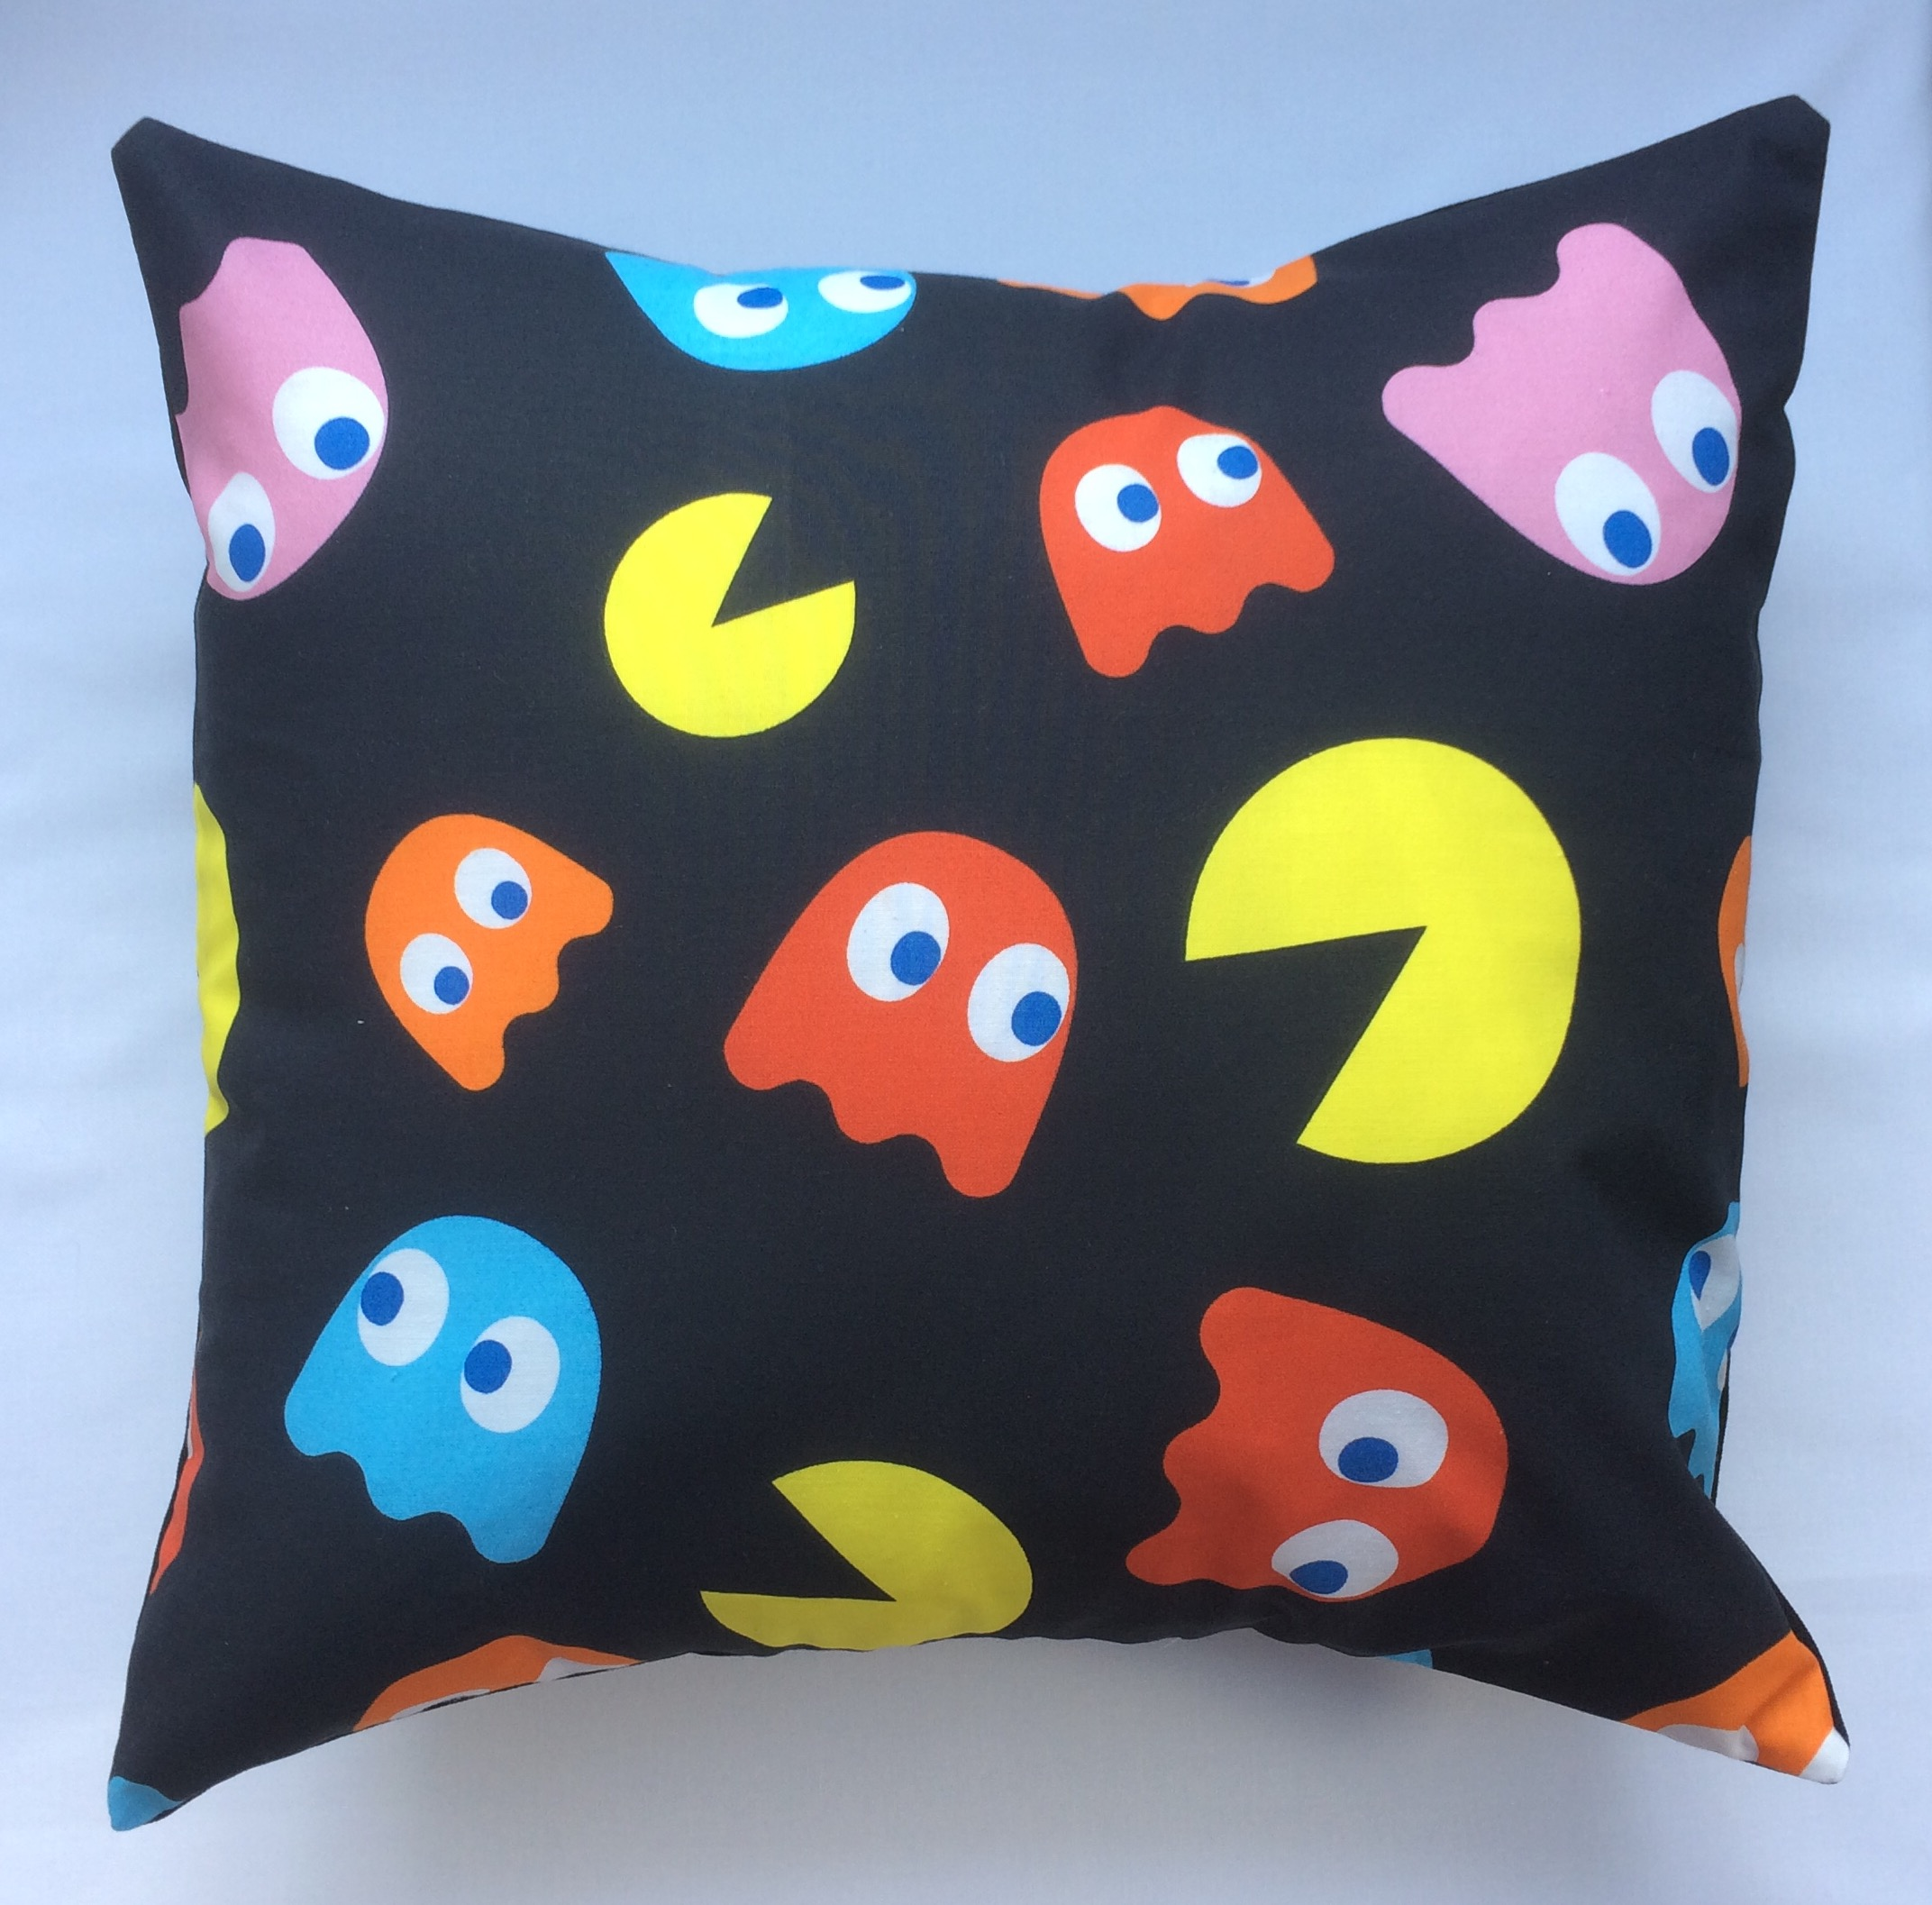 pacman fabric cushion handmade by alien couture